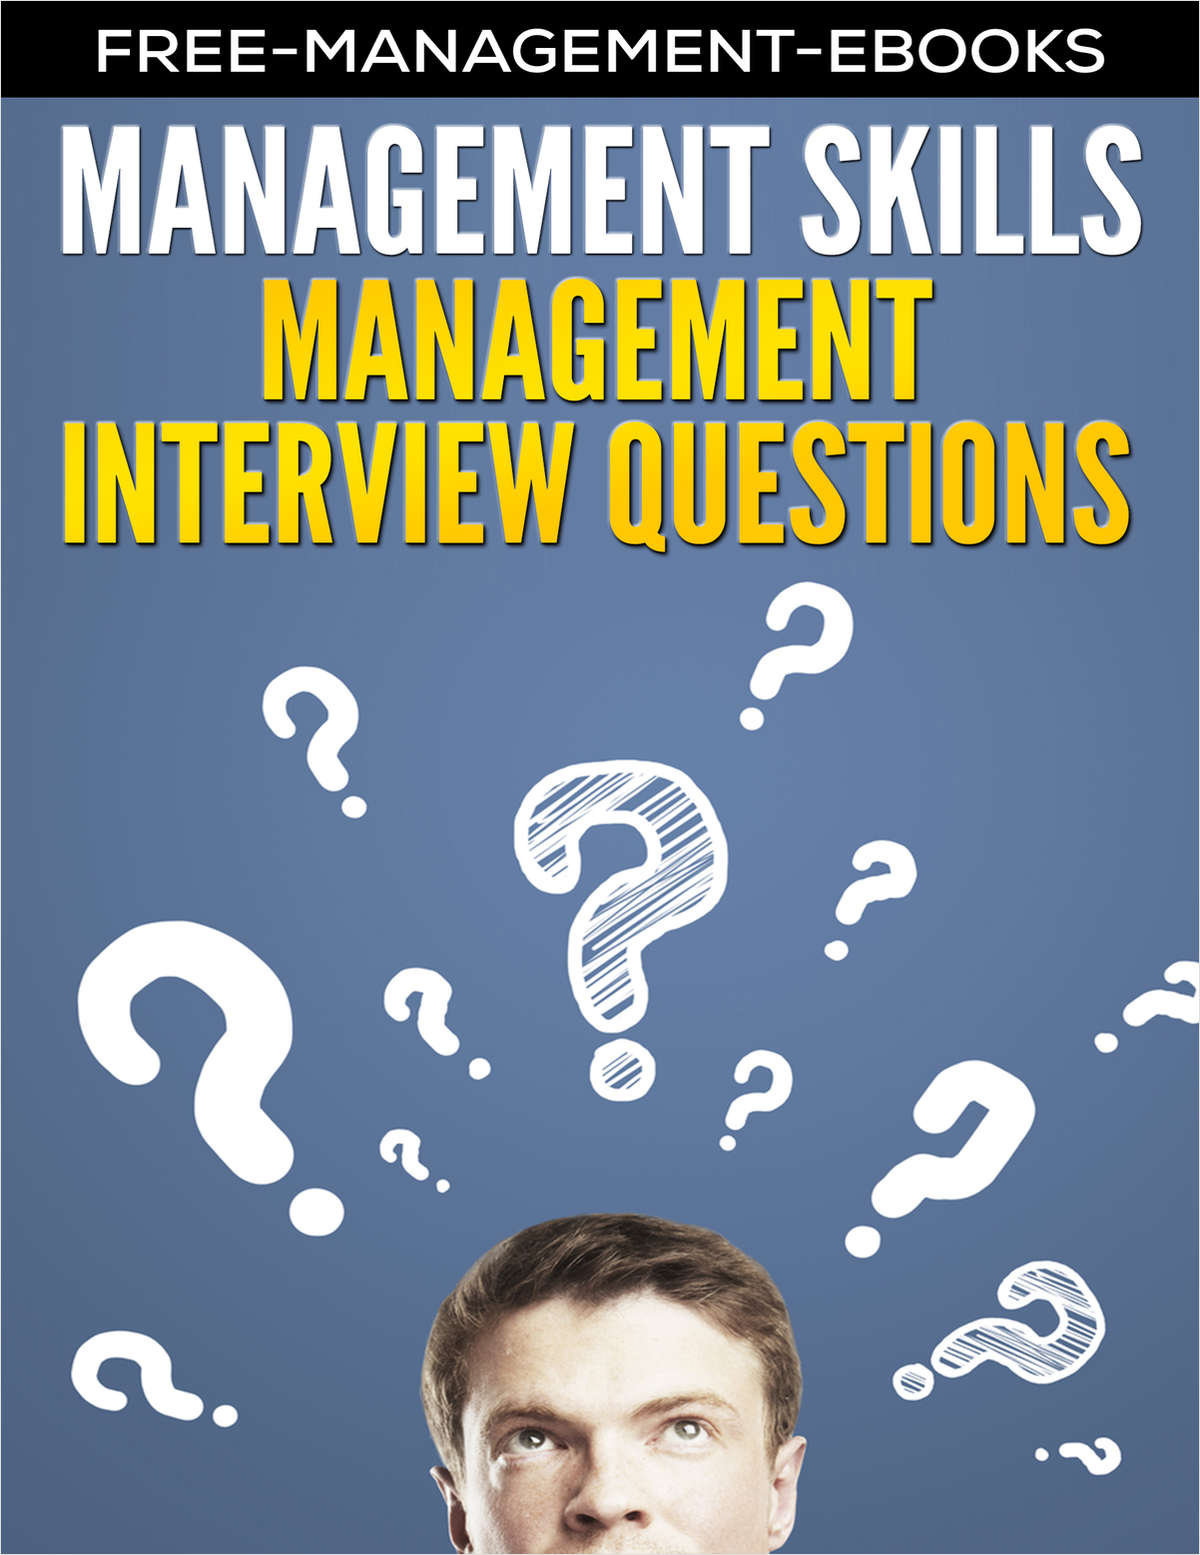 Management Interview Questions - Developing Your Management Skills